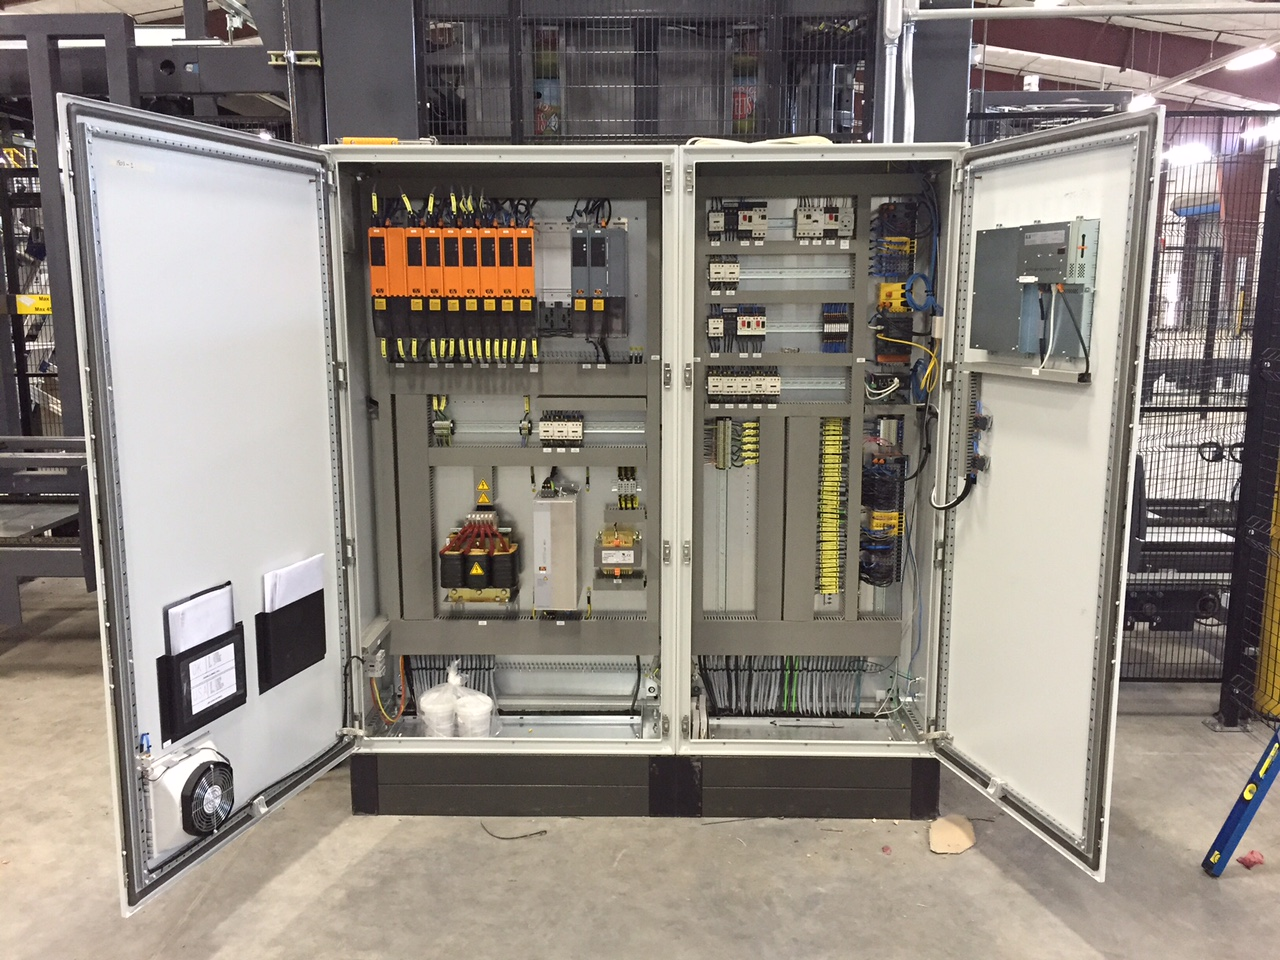 Cabinet Cooler Systems Prevent Heat From Causing Control Panel Problems Electrical Panels Can You Cool This 1